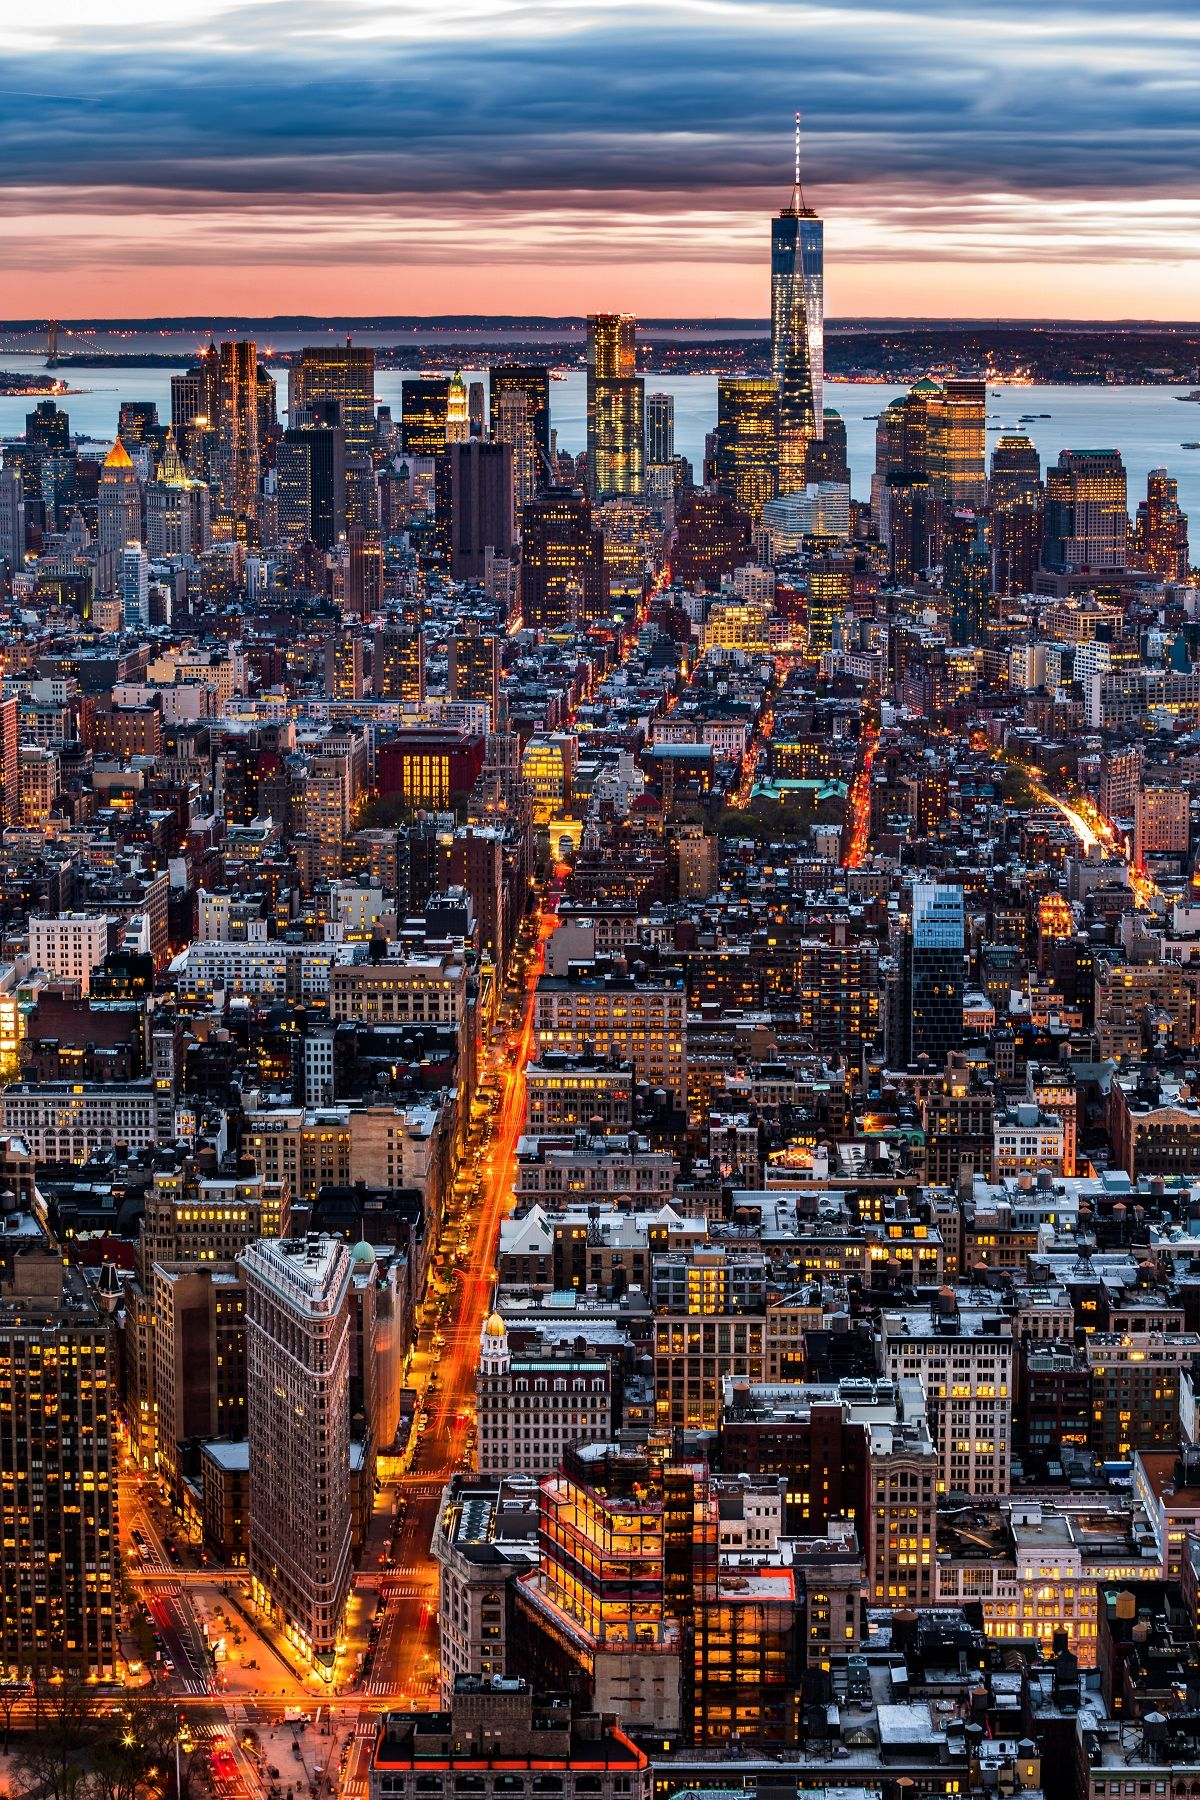 Experience New York City like an insider on this action